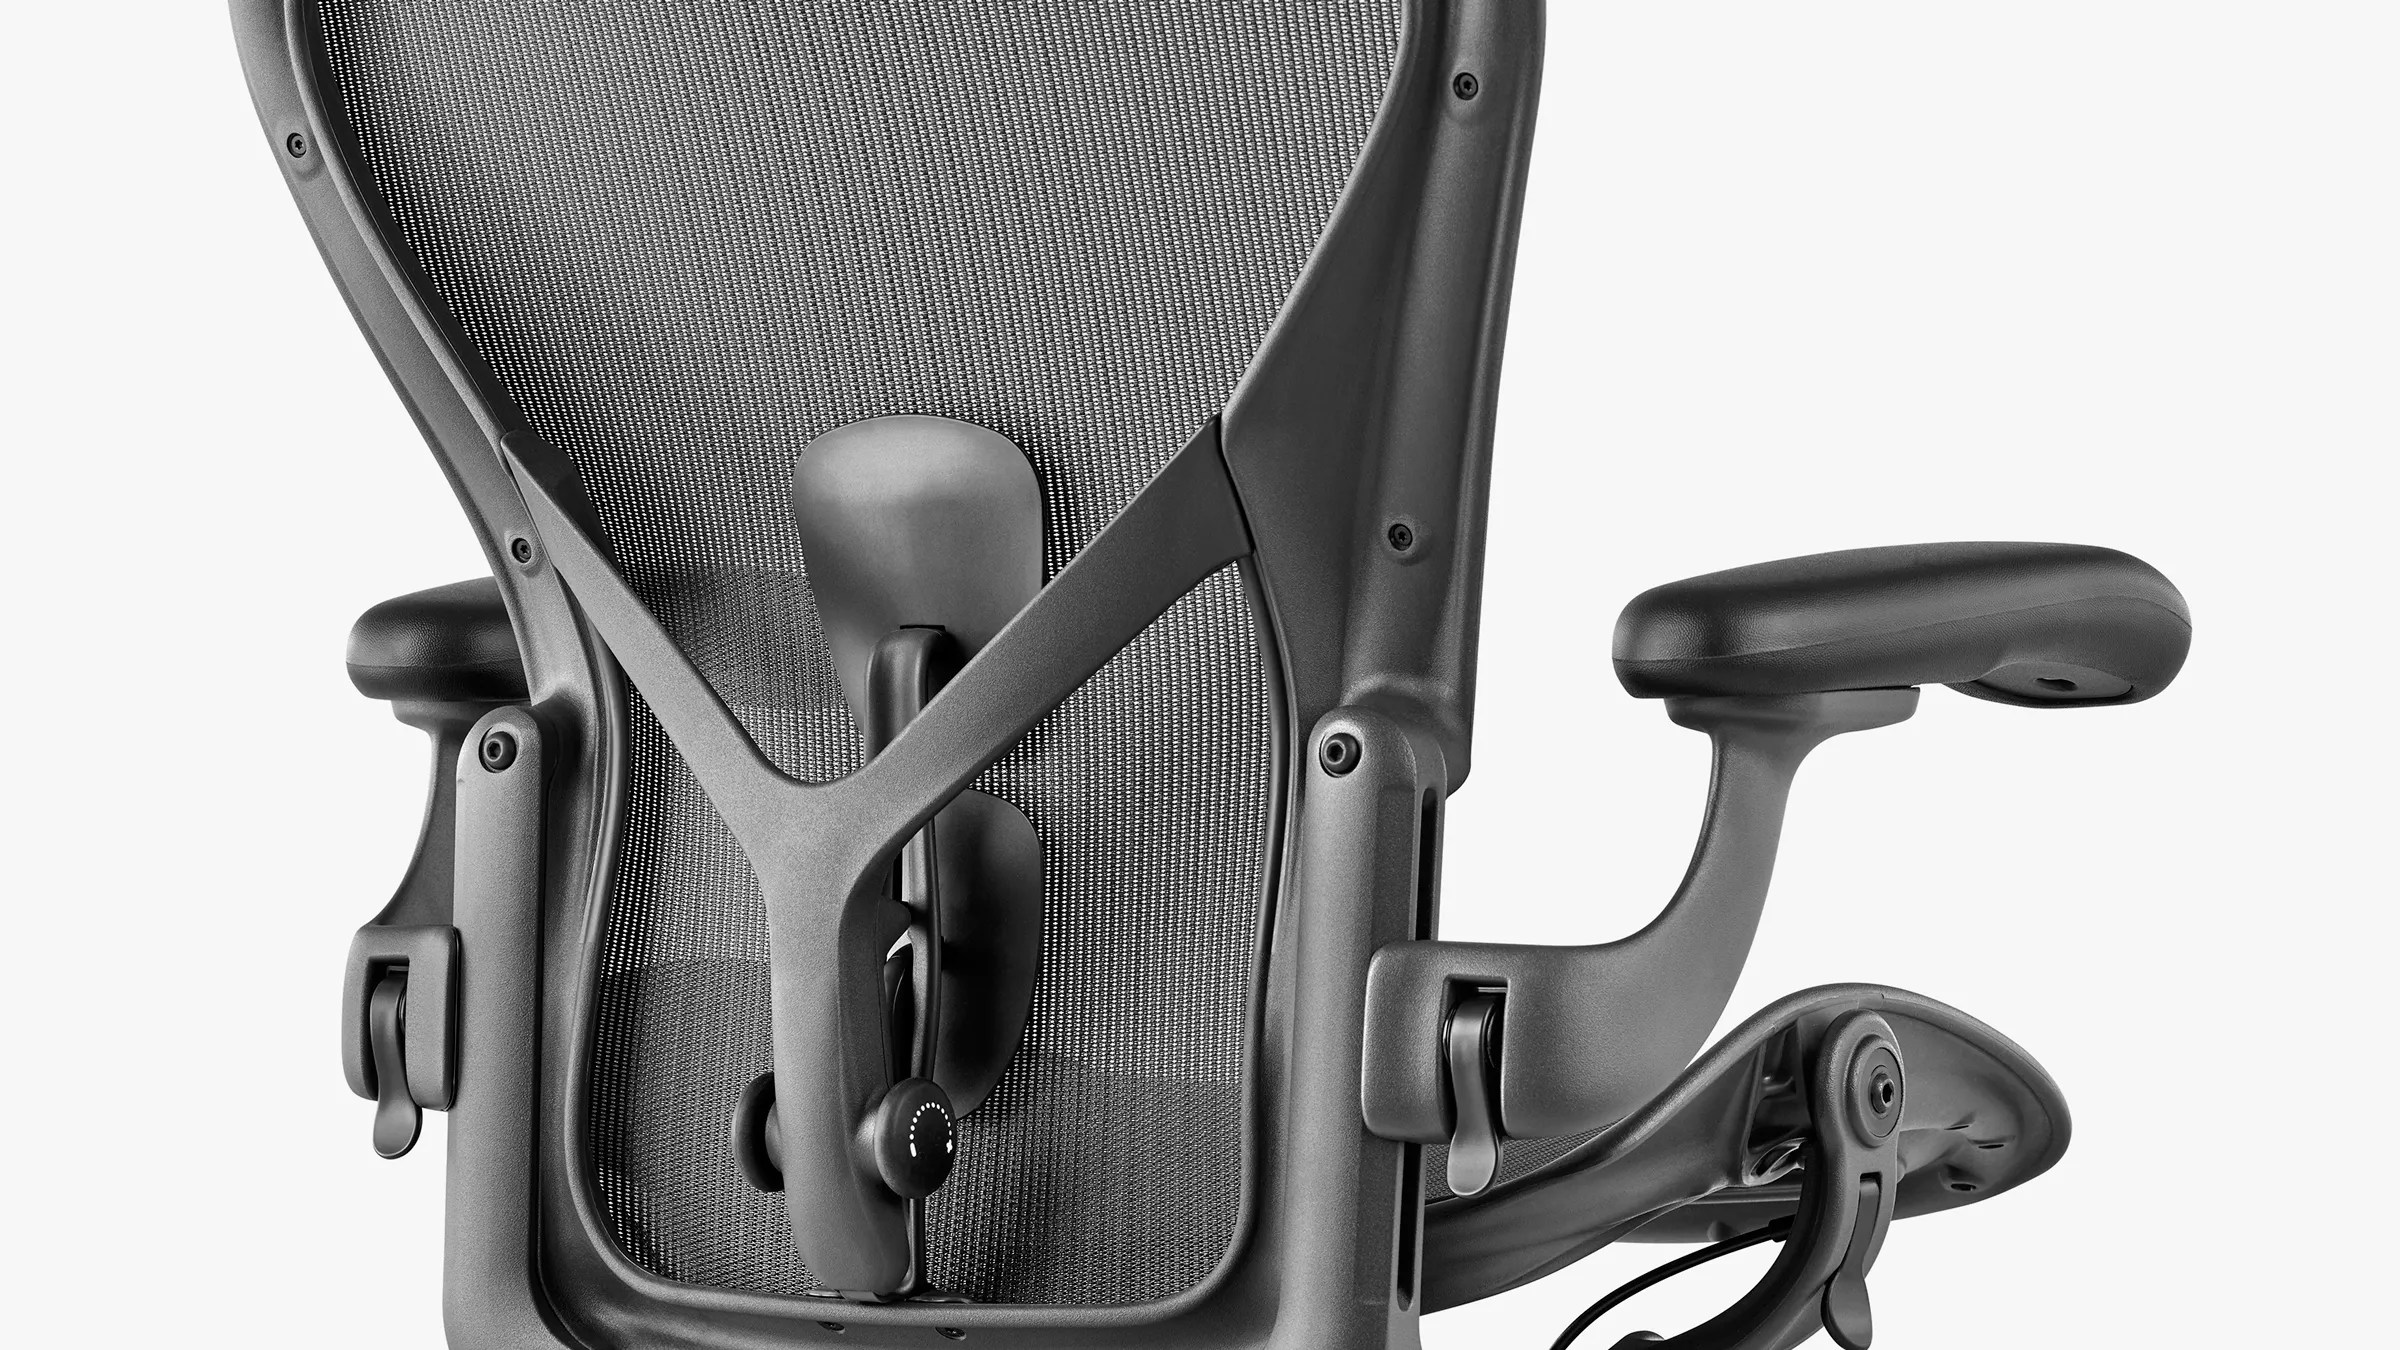 Aero Chair Herman Miller Just Redesigned Its Iconic Aeron Chair Wired